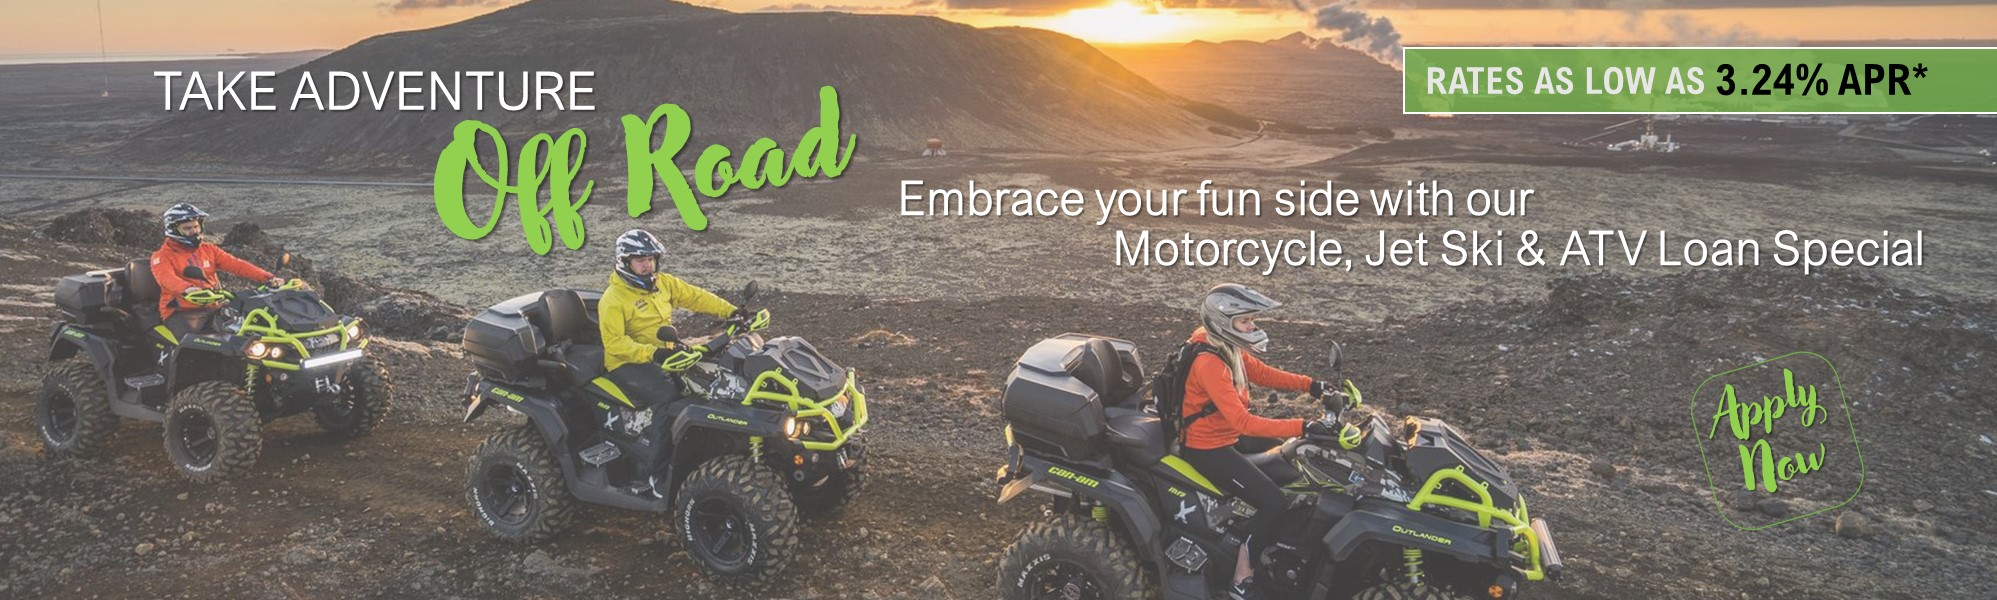 ATV Off Road. Take adventure off road with a loan special. Rates as low as 3.24% APR*. click to apply.